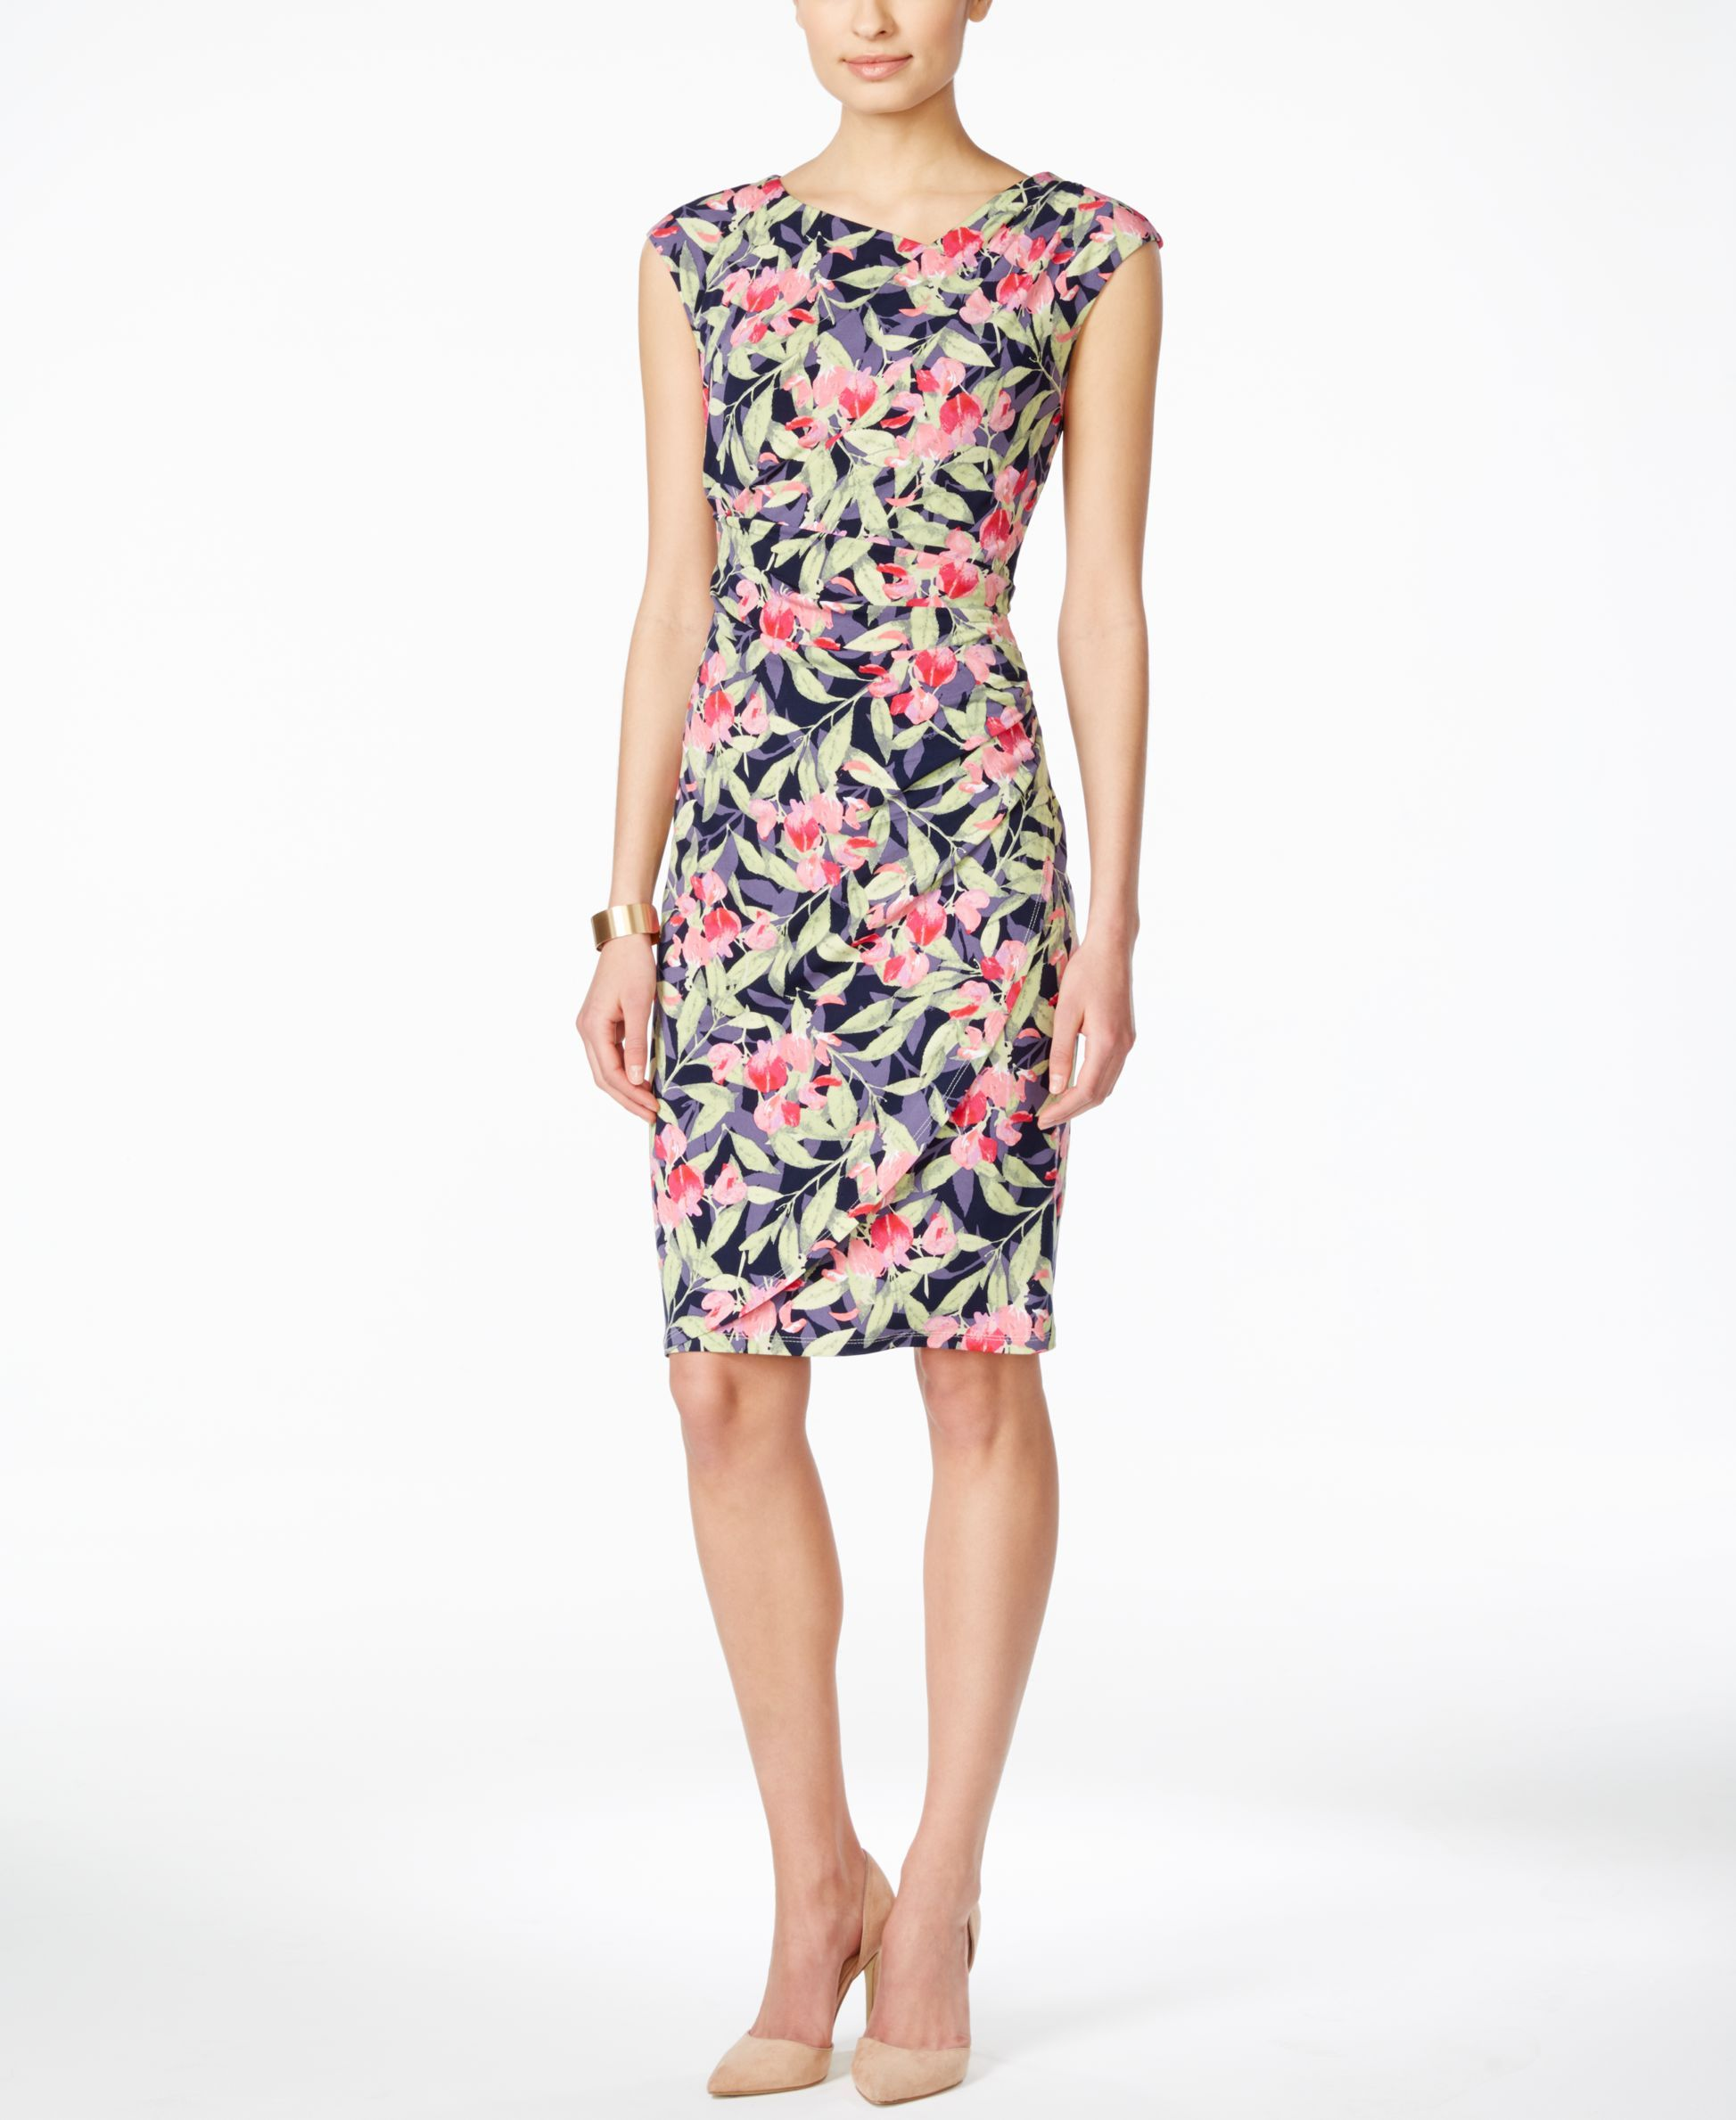 Jcpenney dresses for wedding guest  Connected CapSleeve FloralPrint Gathered Sheath Dress  dresses